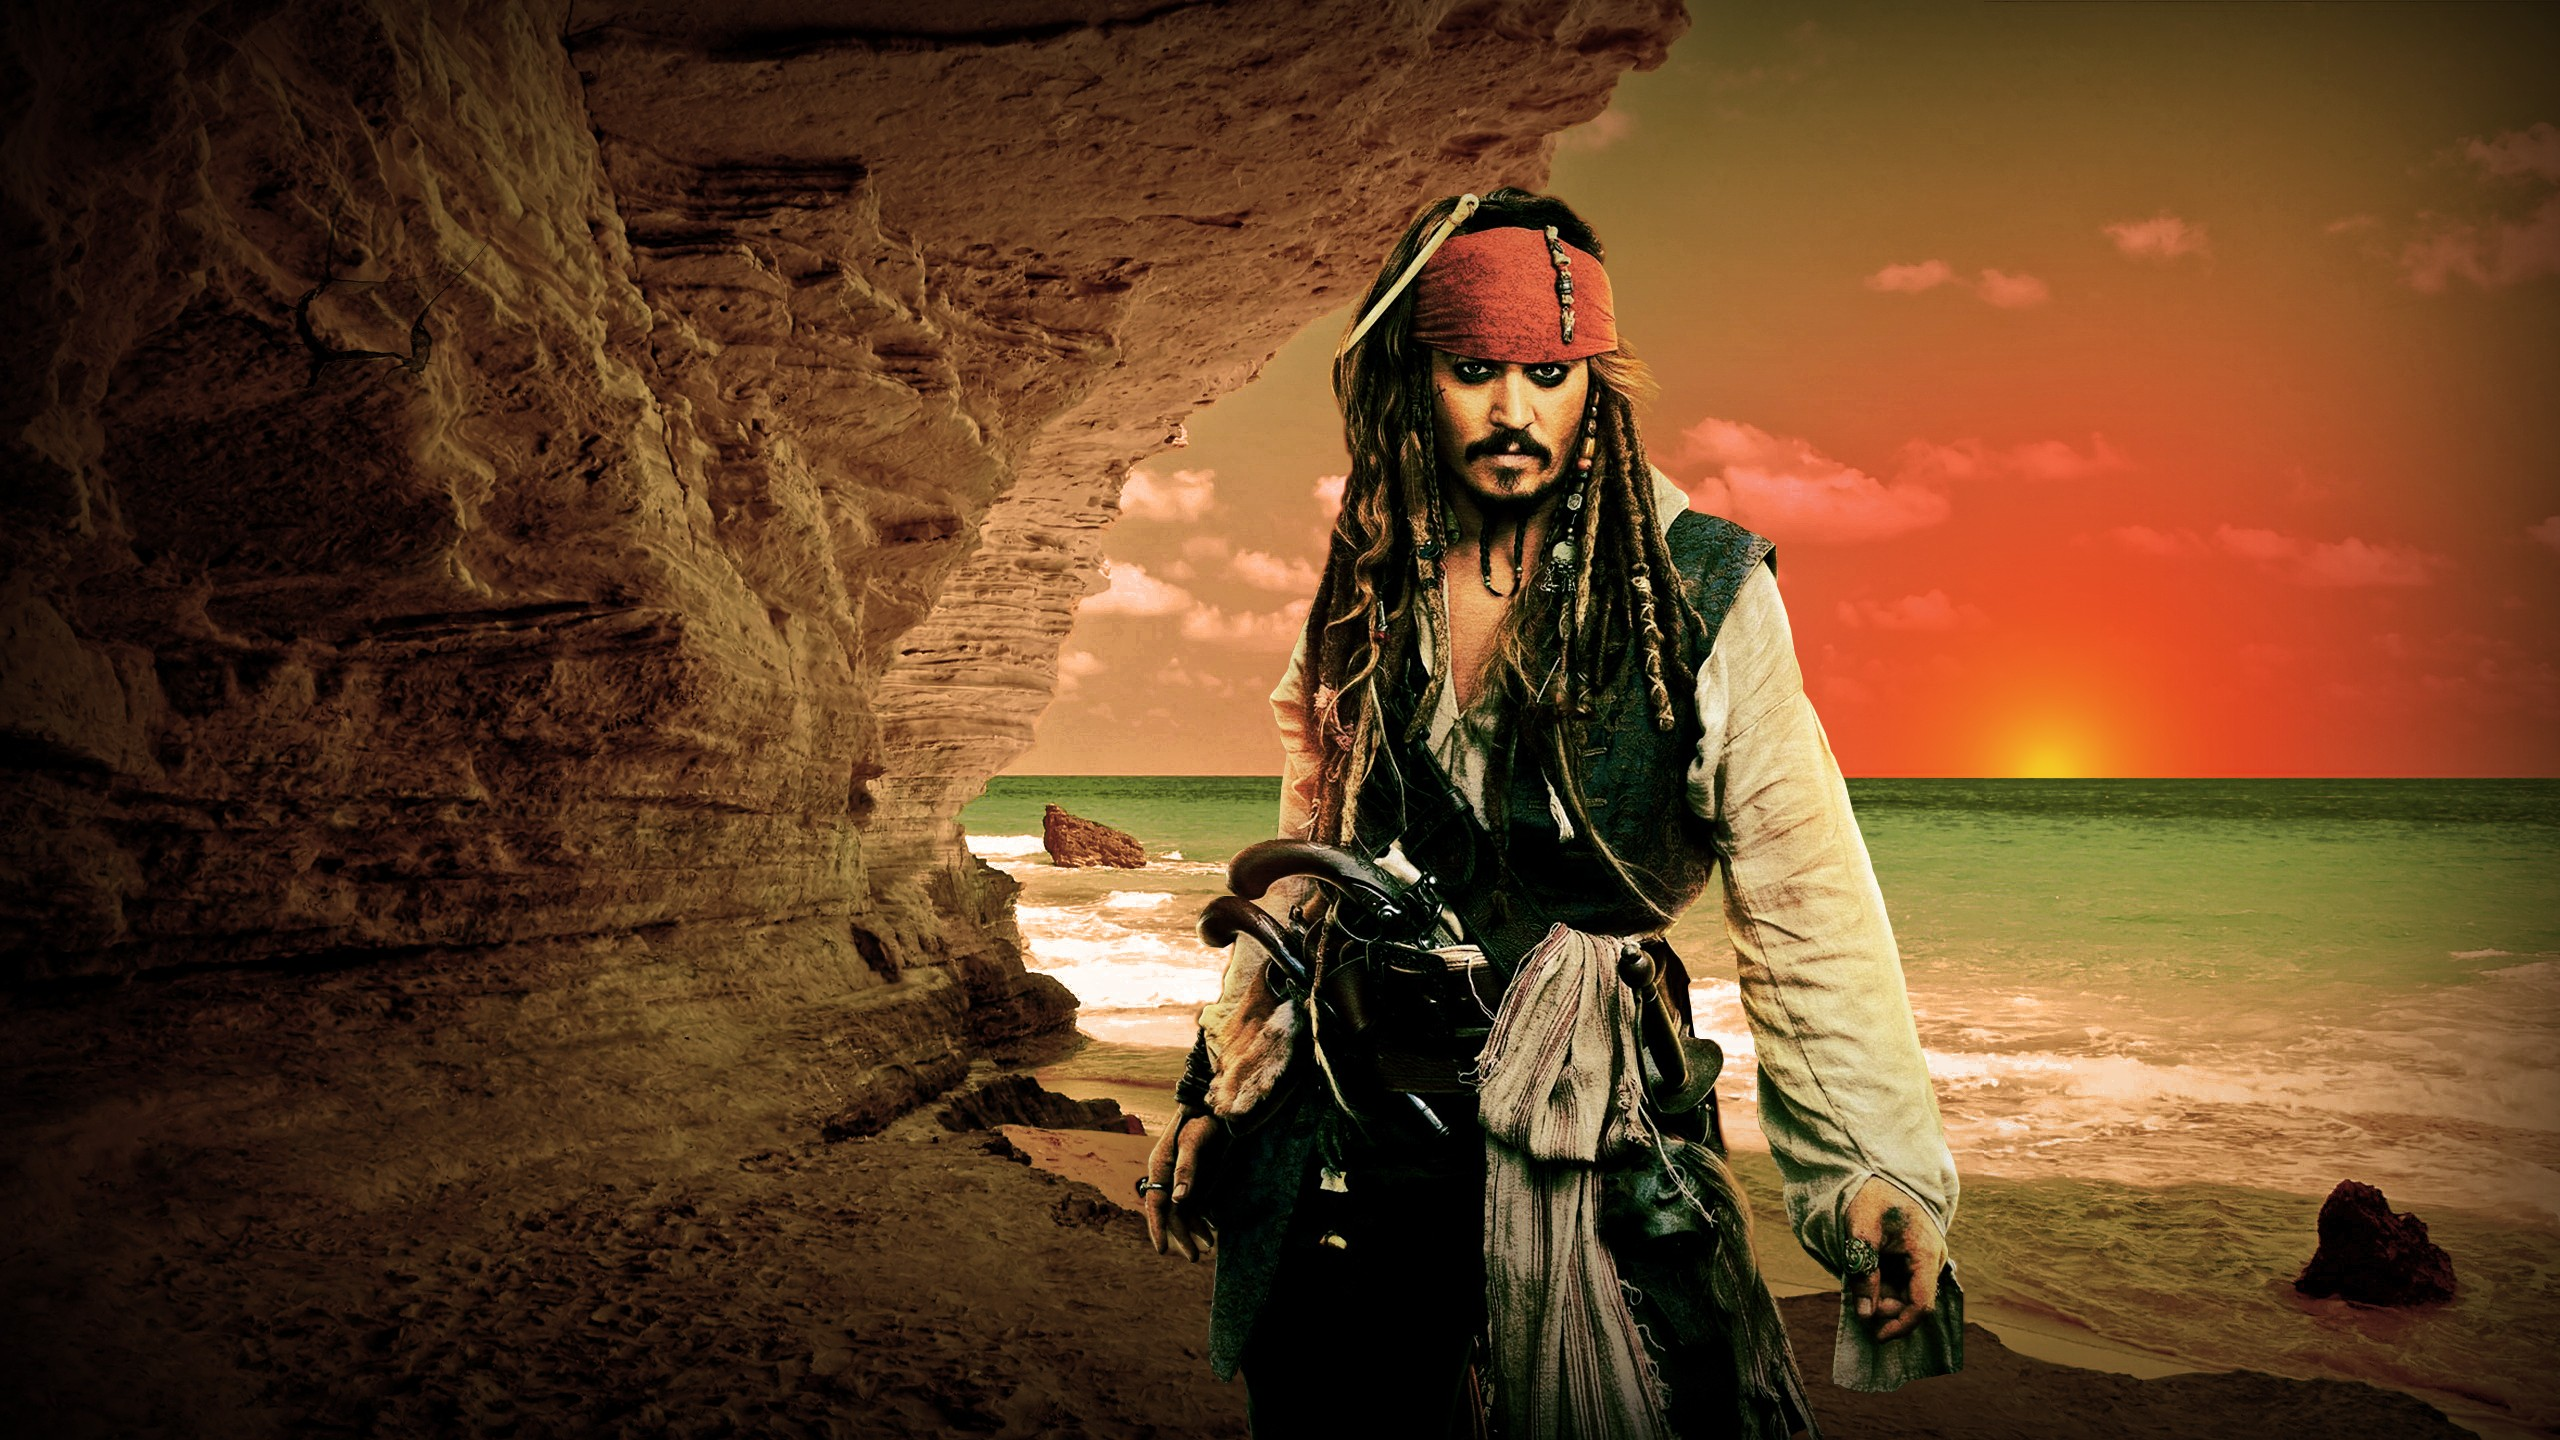 386 Pirates Of The Caribbean Hd Wallpapers Background Images